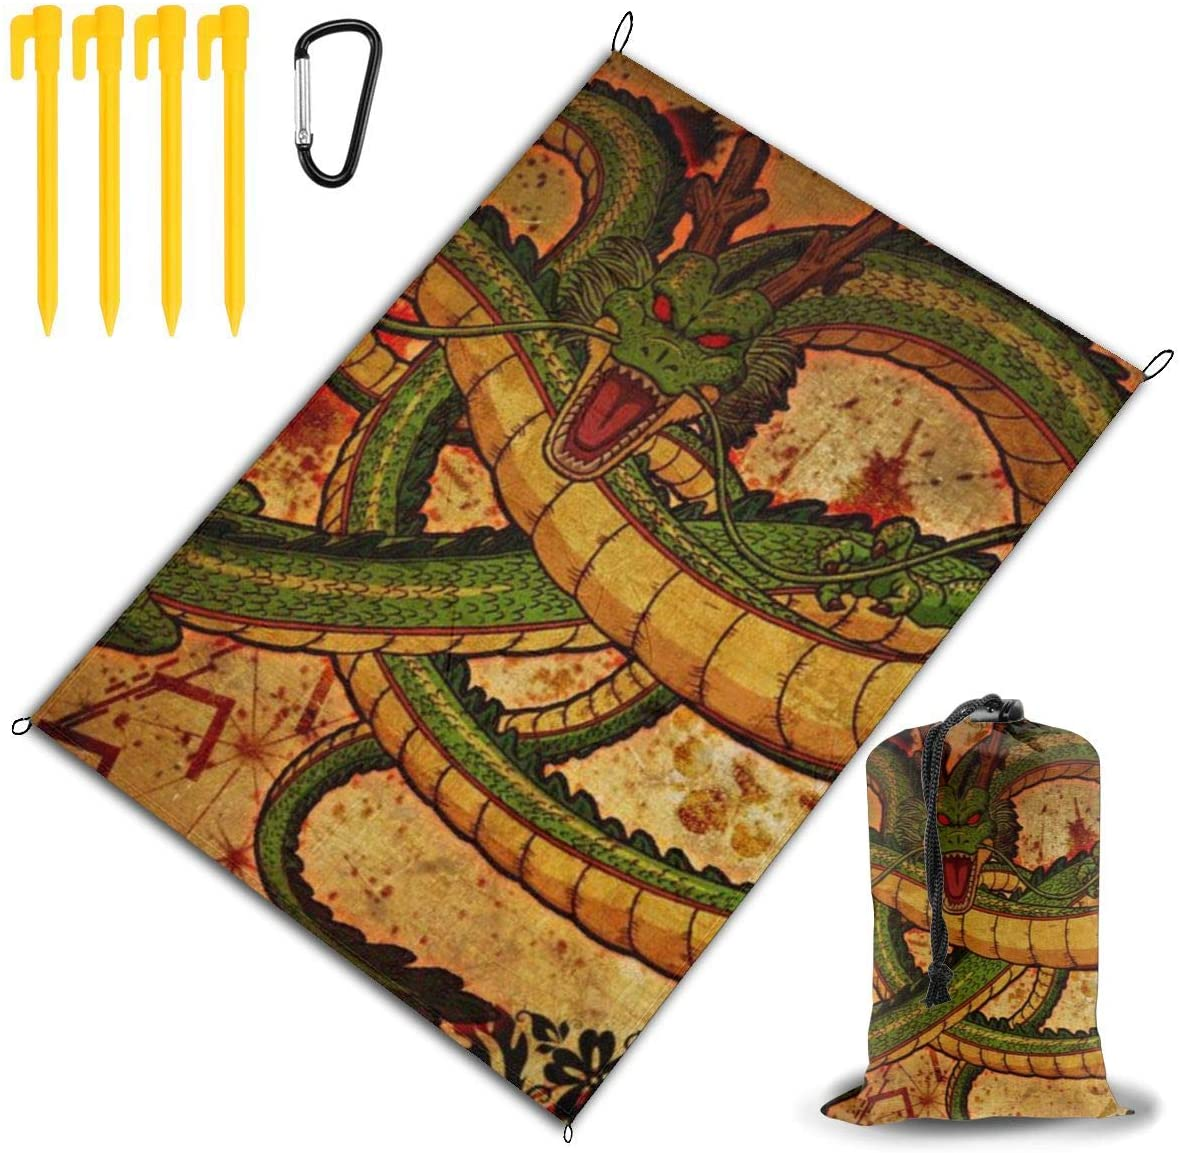 THONFIRE Beach Picnic Blanket Chinese Dragon Waterproof Large Outdoor Handy Mat Sand Proof Camping Travelling Accessories Packable Family Tote On Lawn RV Quick Dry Bag